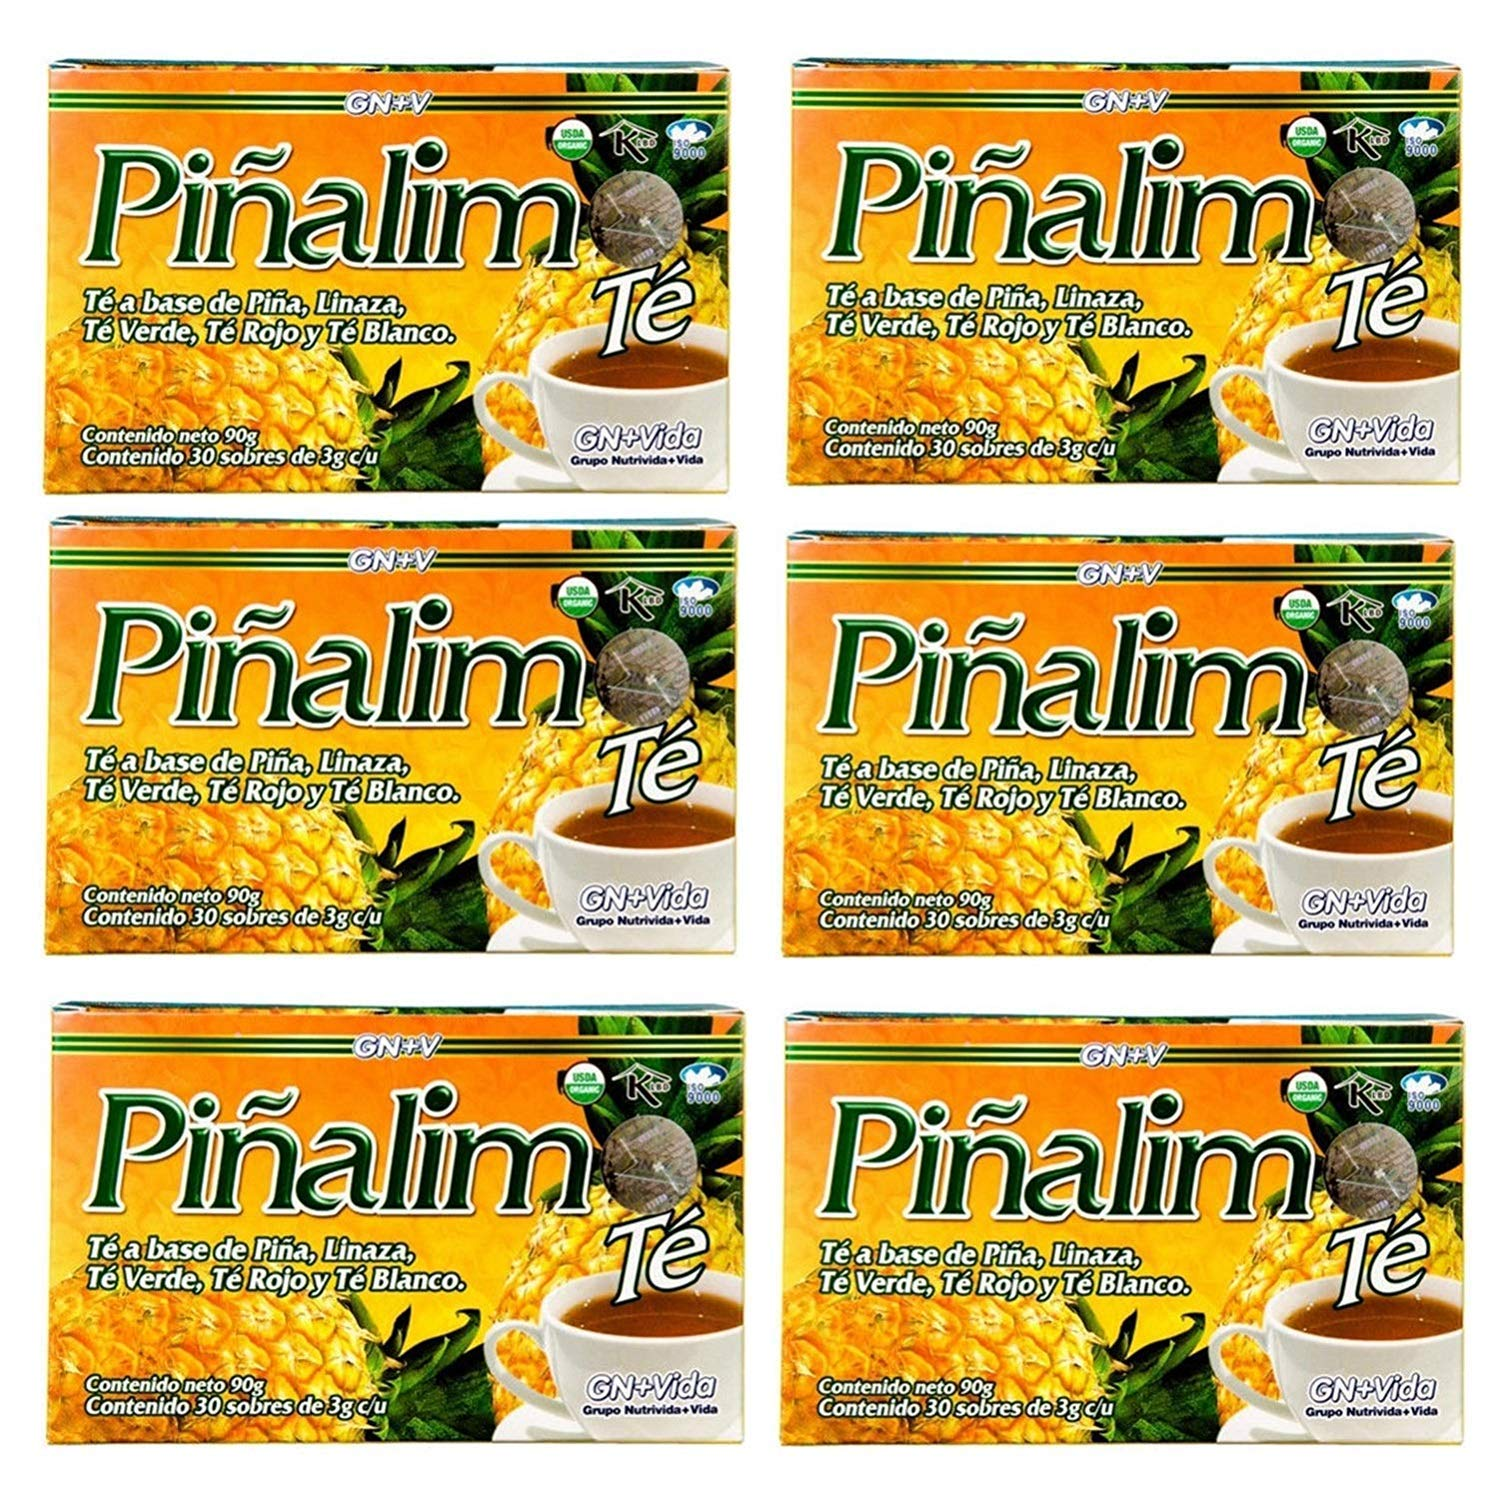 6 Boxes Te Pinalim Tea GN Vida Weight Loss Tea Diet 180 Day Supply